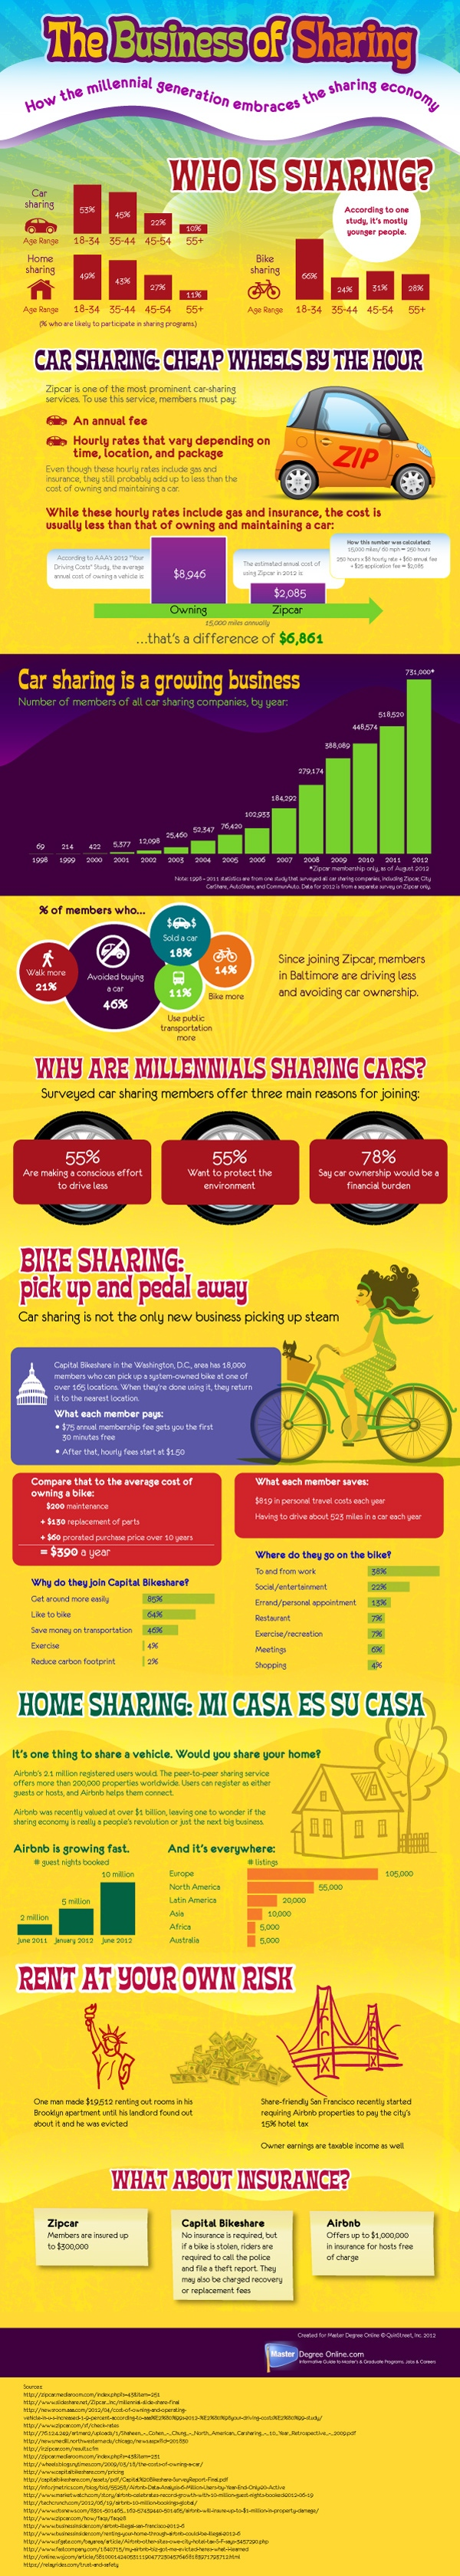 Infographic: Business of Sharing